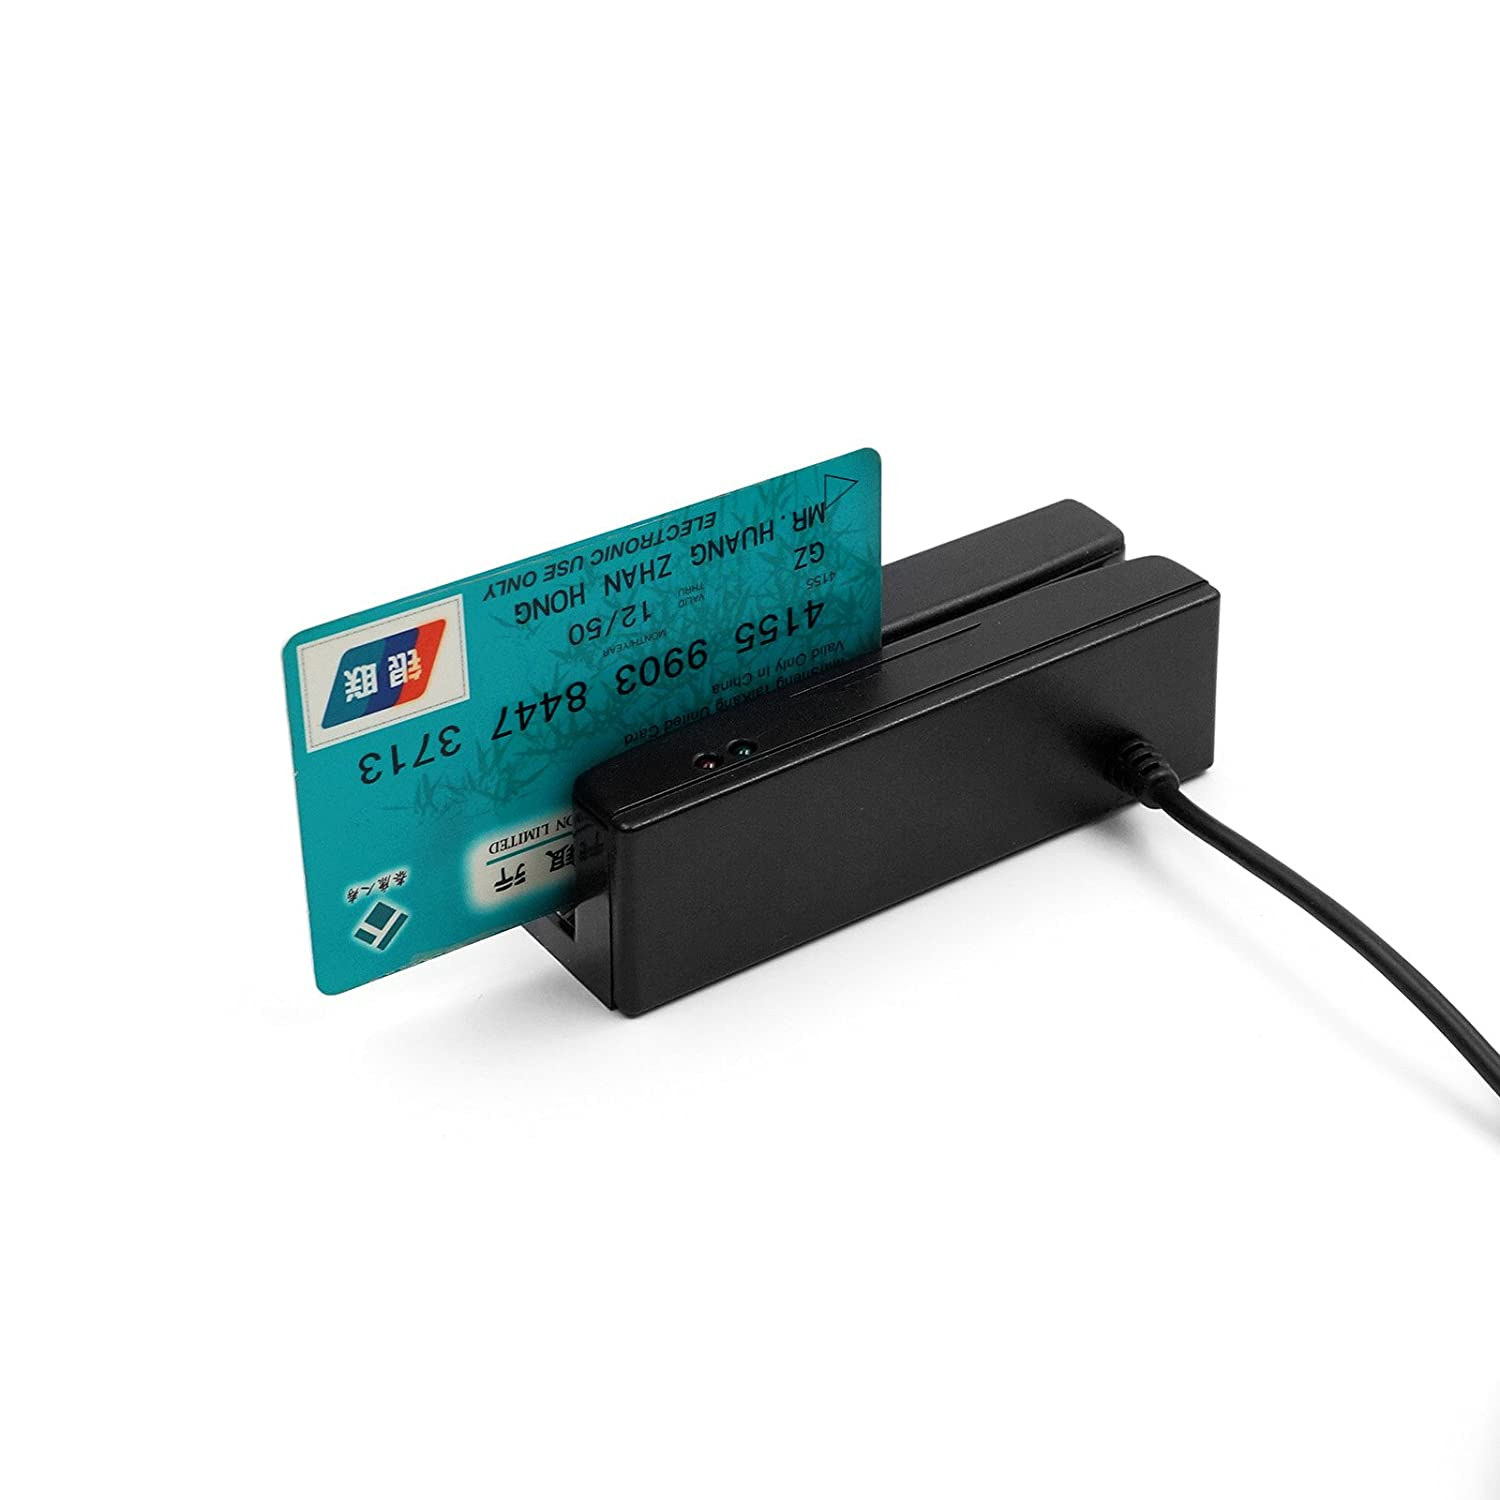 ZCS100-RF 2-in-1 Magstripe reader RFID NFC contactless card reader writer